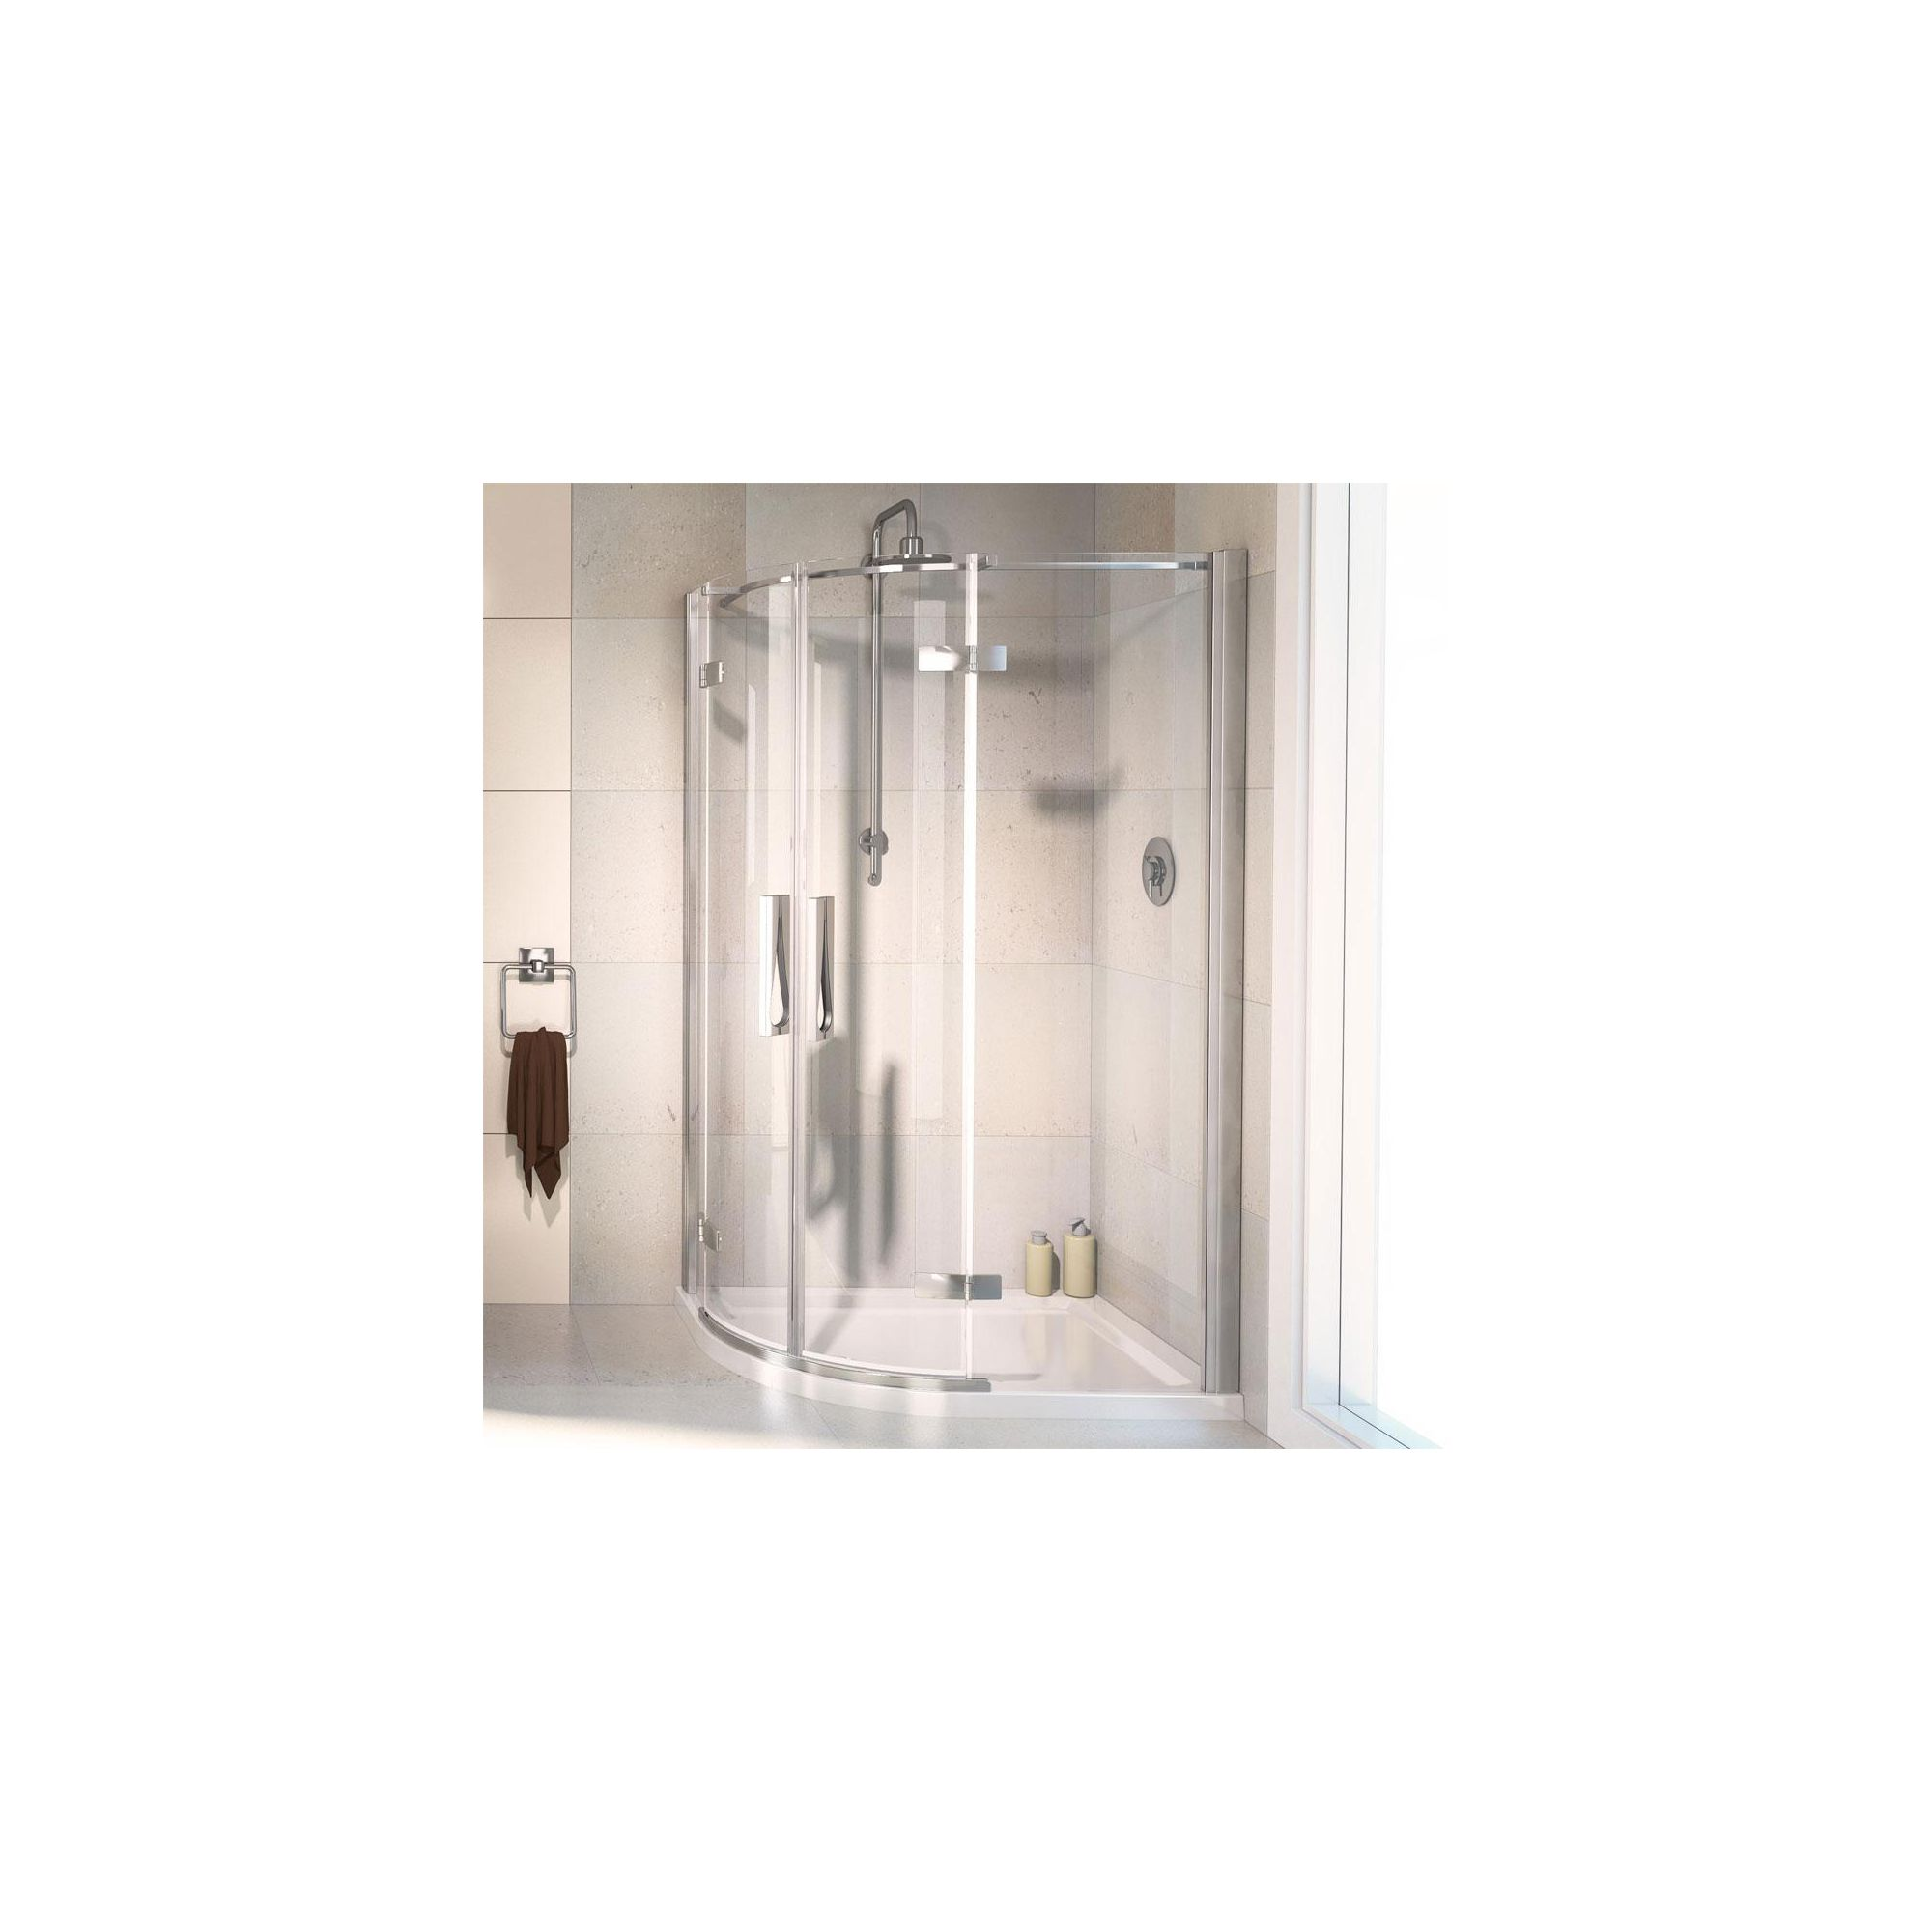 Aqualux AQUA8 Hinge Offset Quadrant Shower Door, 1200mm x 900mm, Polished Silver Frame, 8mm Glass at Tesco Direct